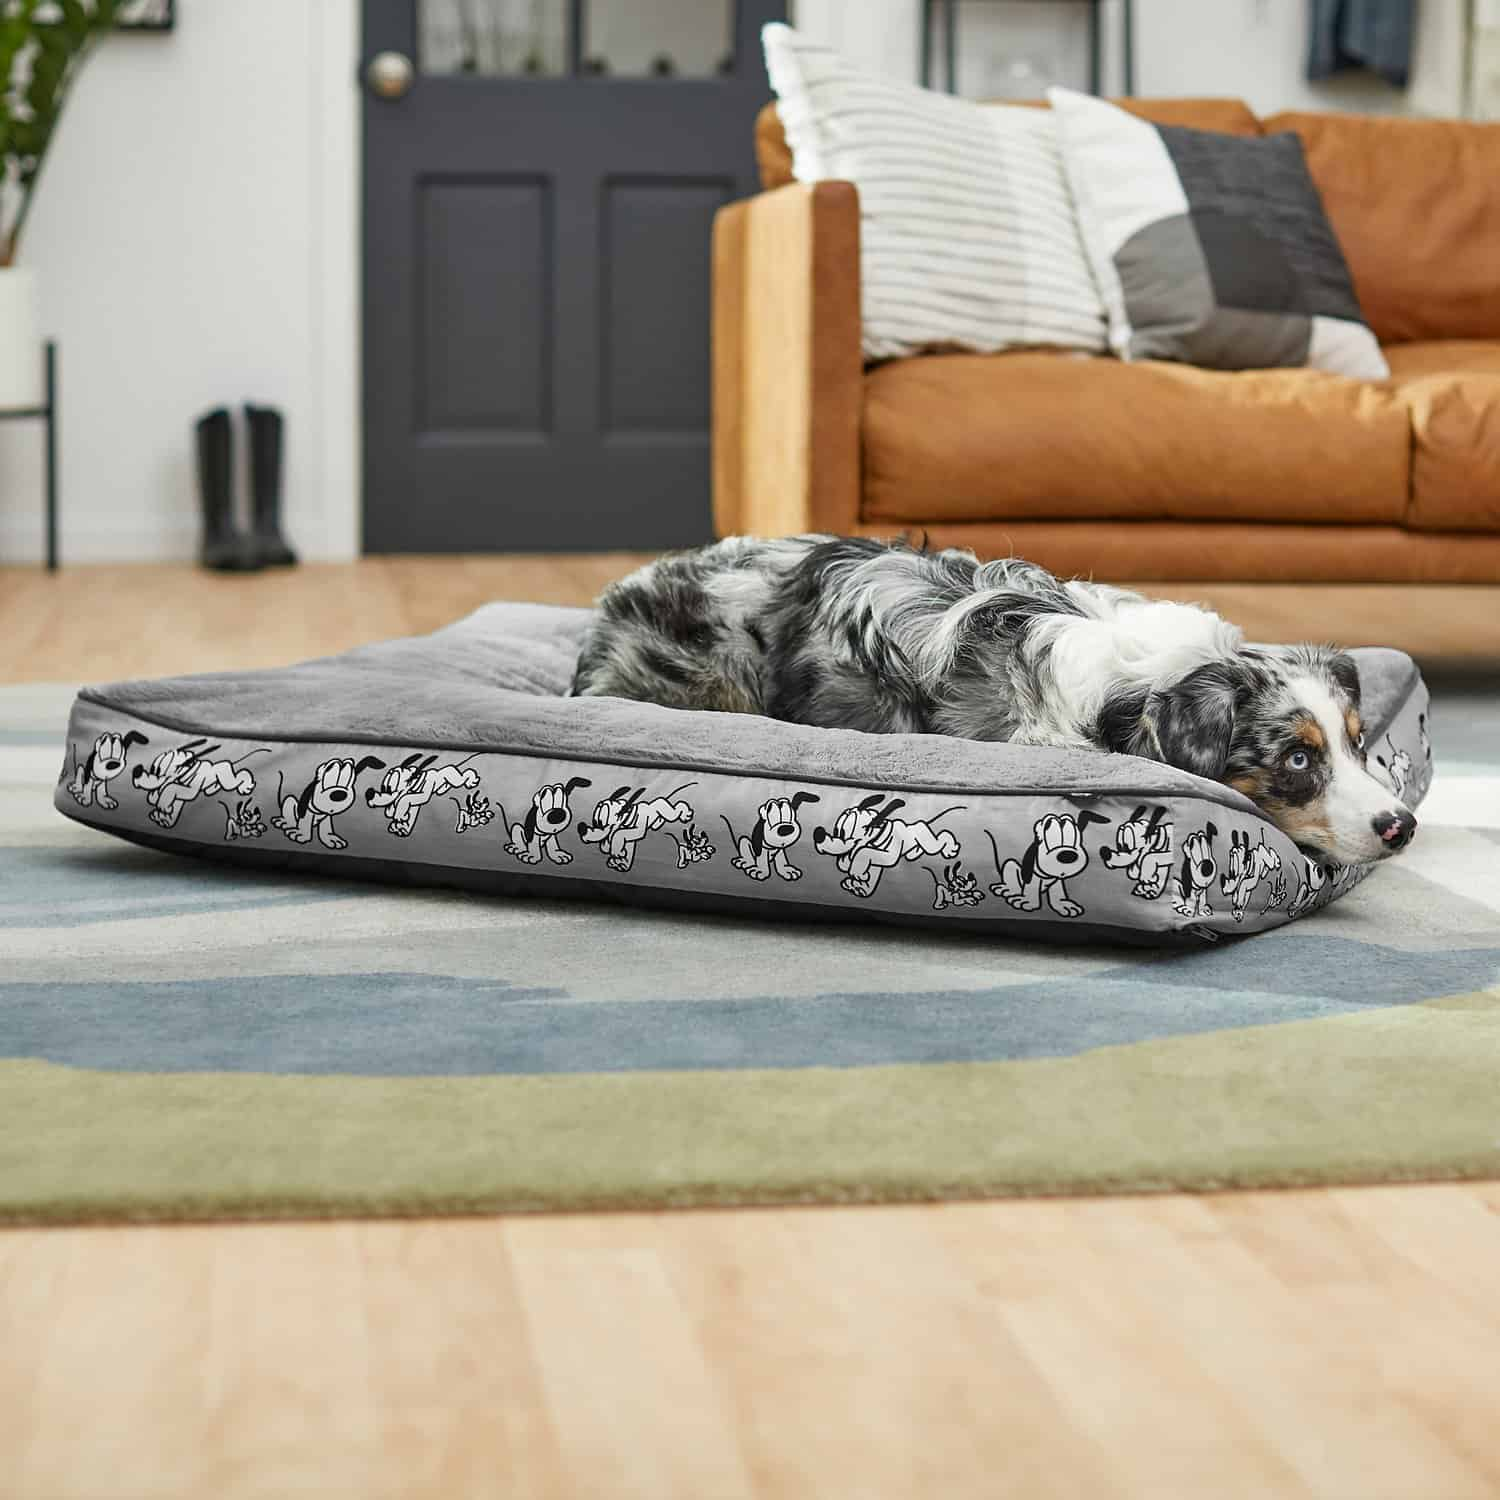 Disney Pluto Pillow Dog Bed (also good for cats)